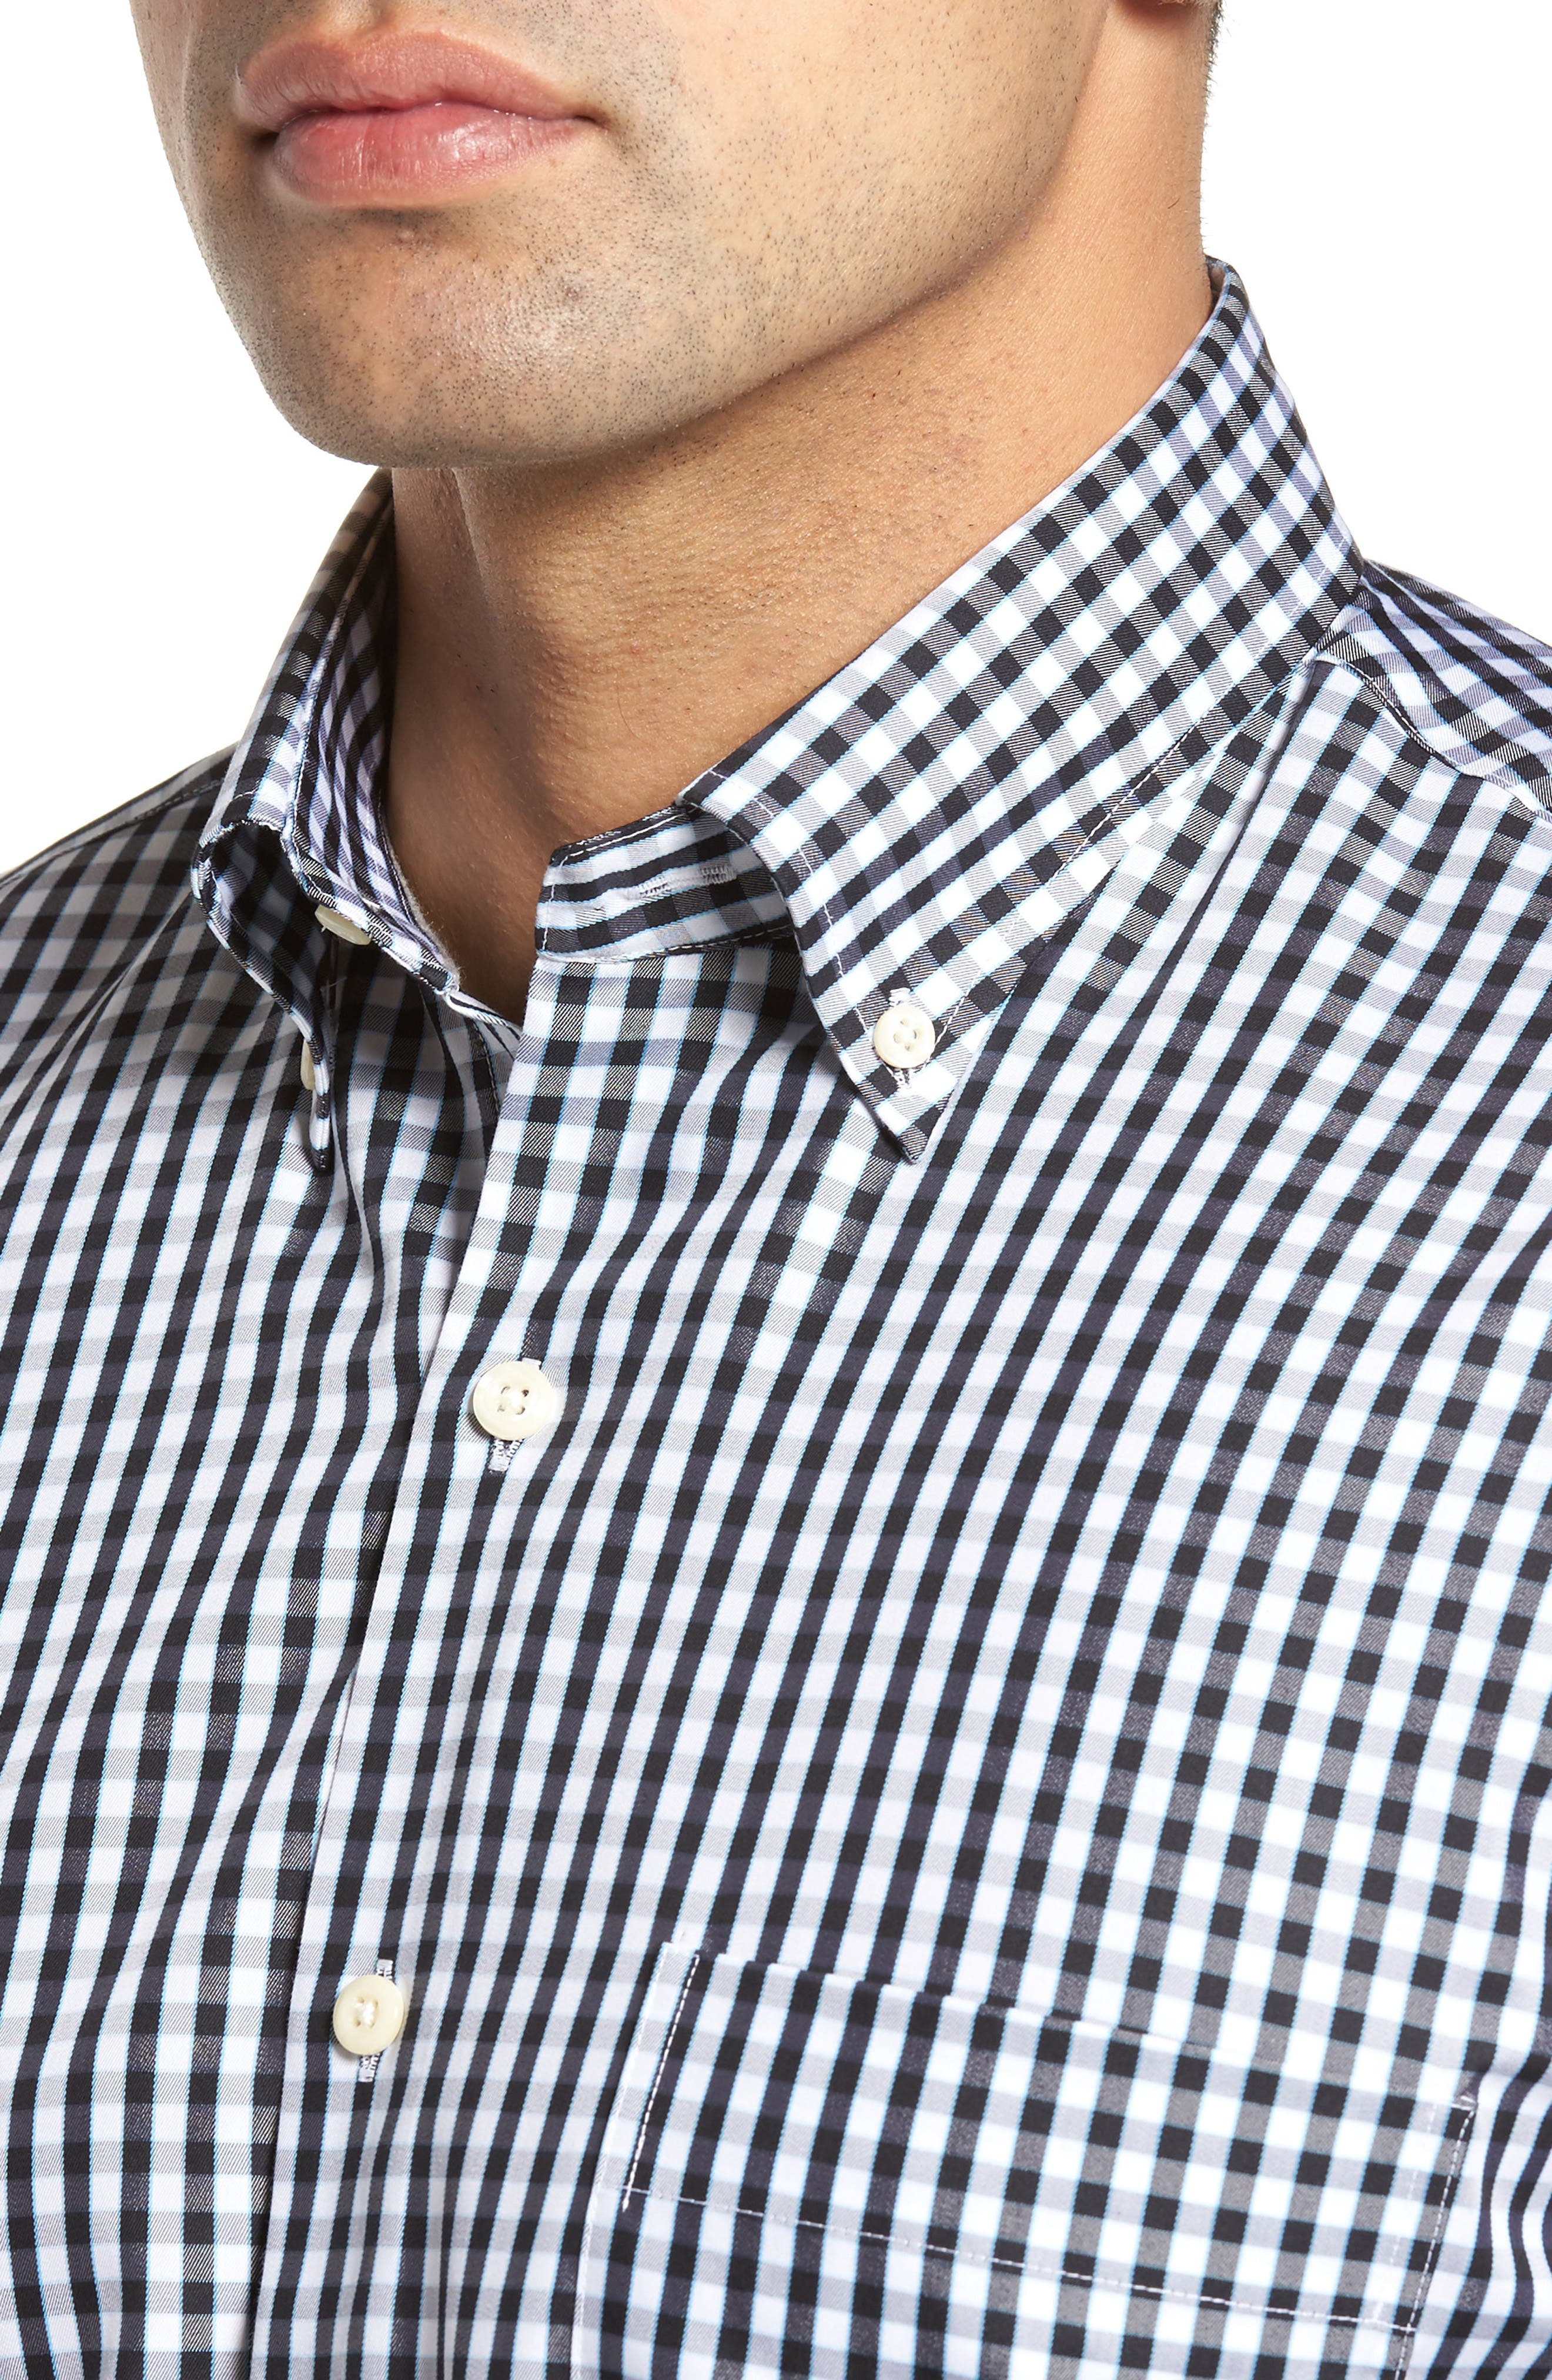 Black Sand Classic Fit Gingham Check Sport Shirt,                             Alternate thumbnail 4, color,                             Black